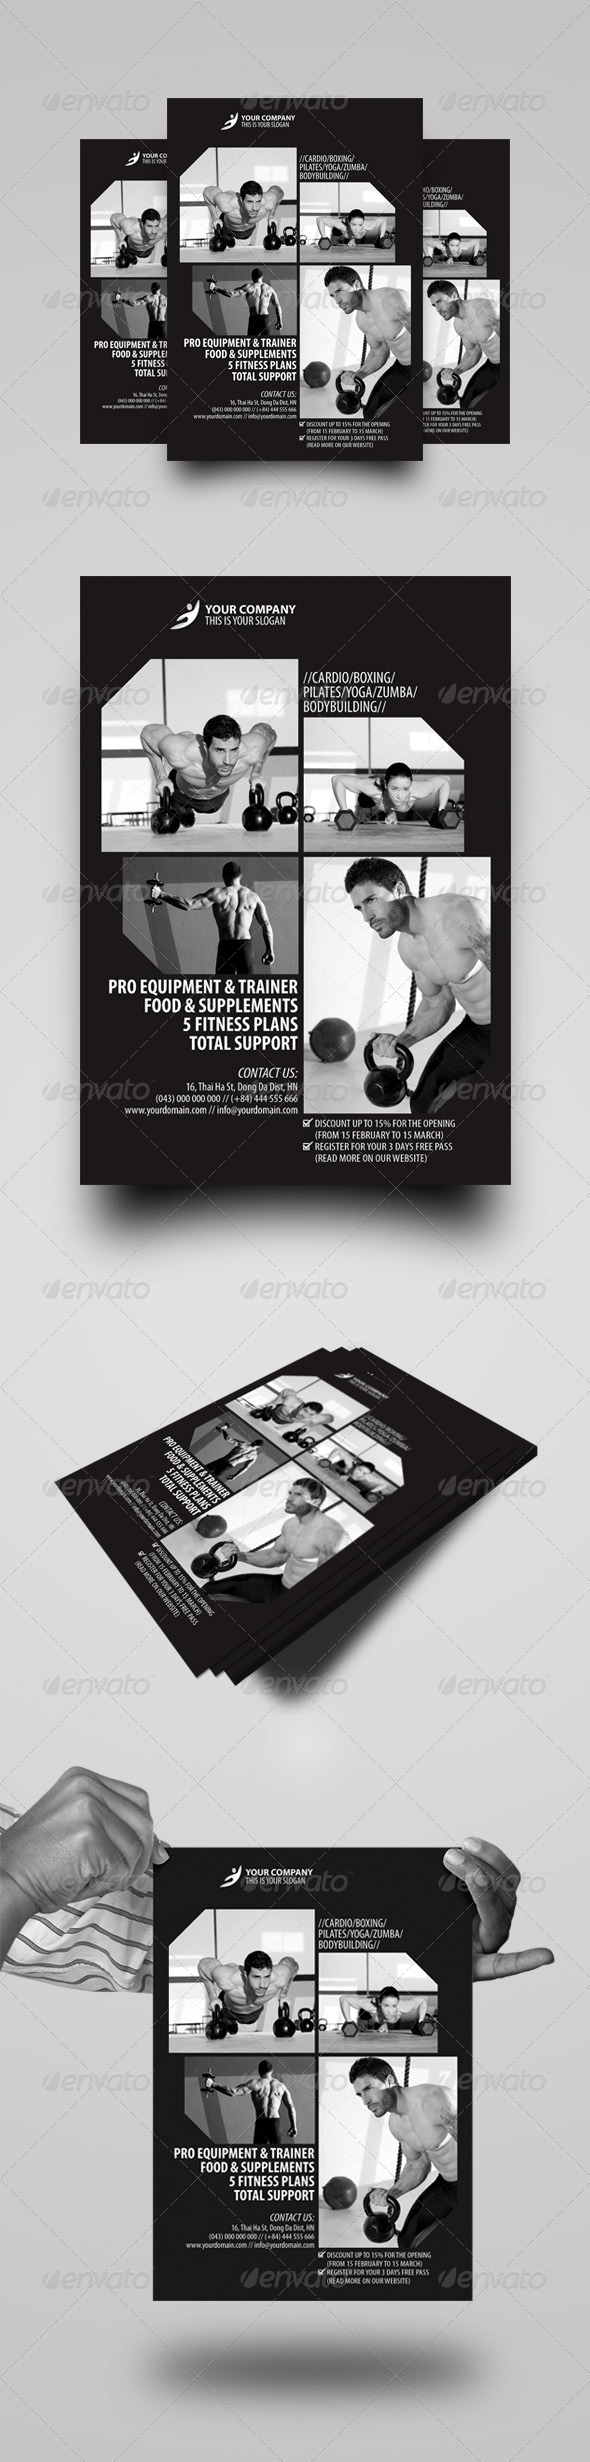 GraphicRiver Fitness Center Flyers 4199230